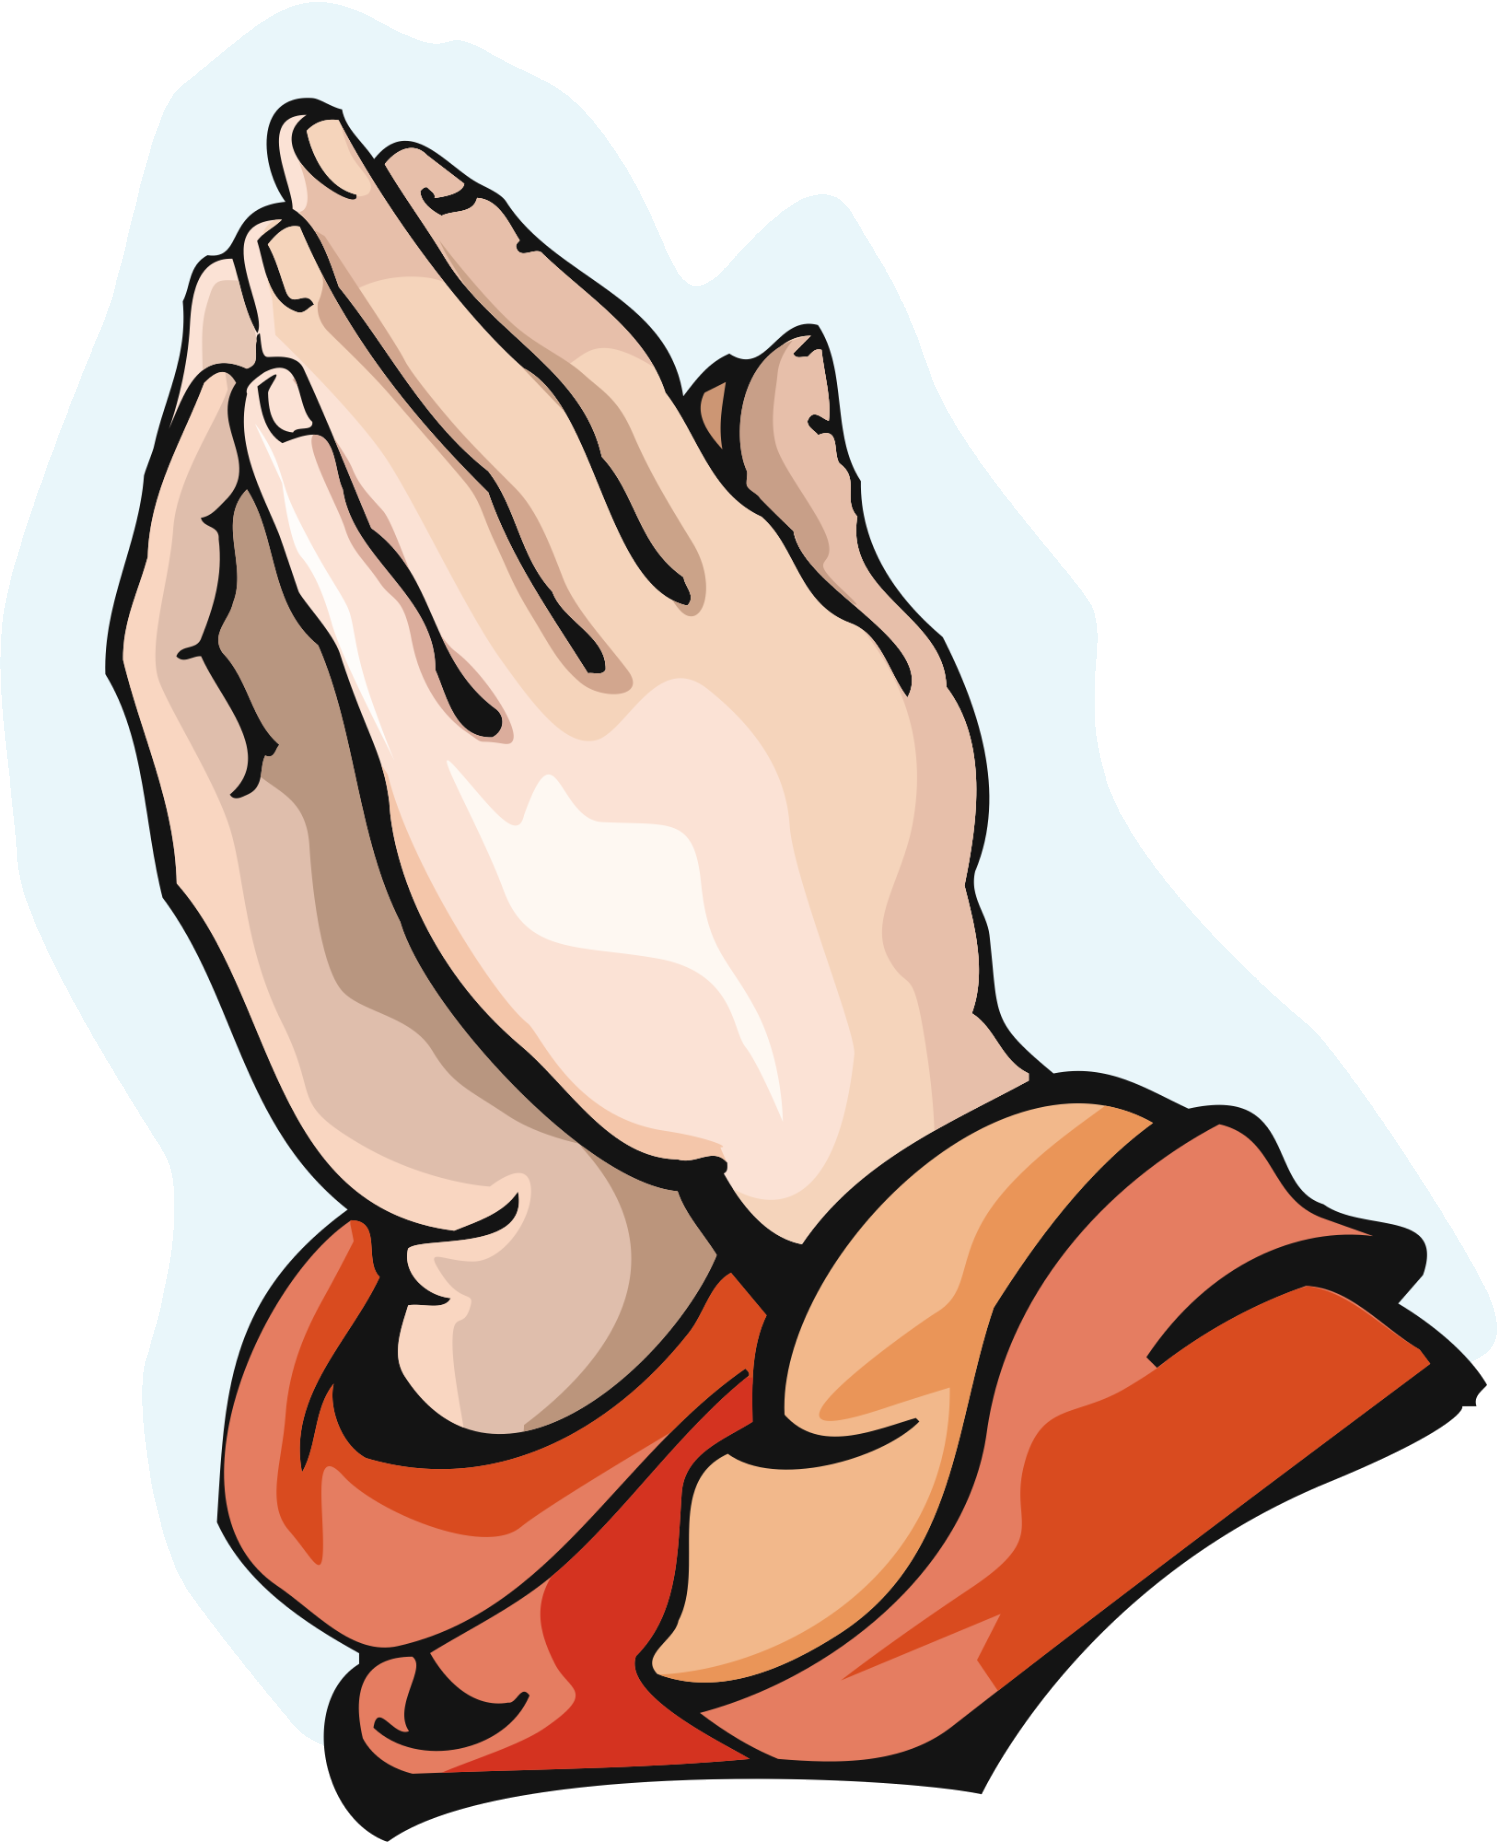 Praying Hands Collection Of Free Holy Clipart Prayer Hand.